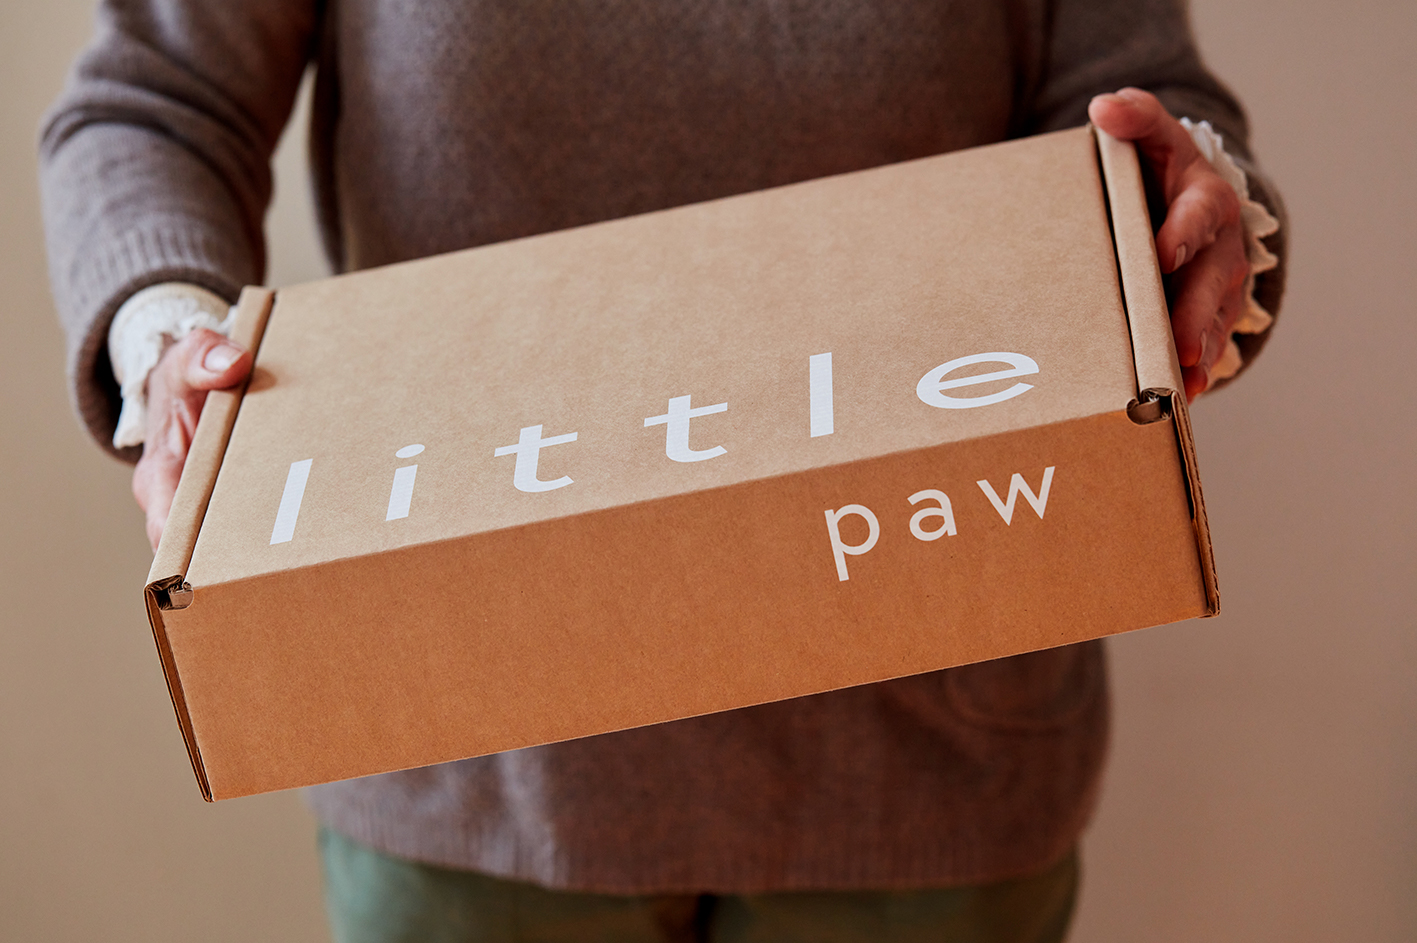 Almighty Creative Studio Create Branding and Packaging Design for Little Paw